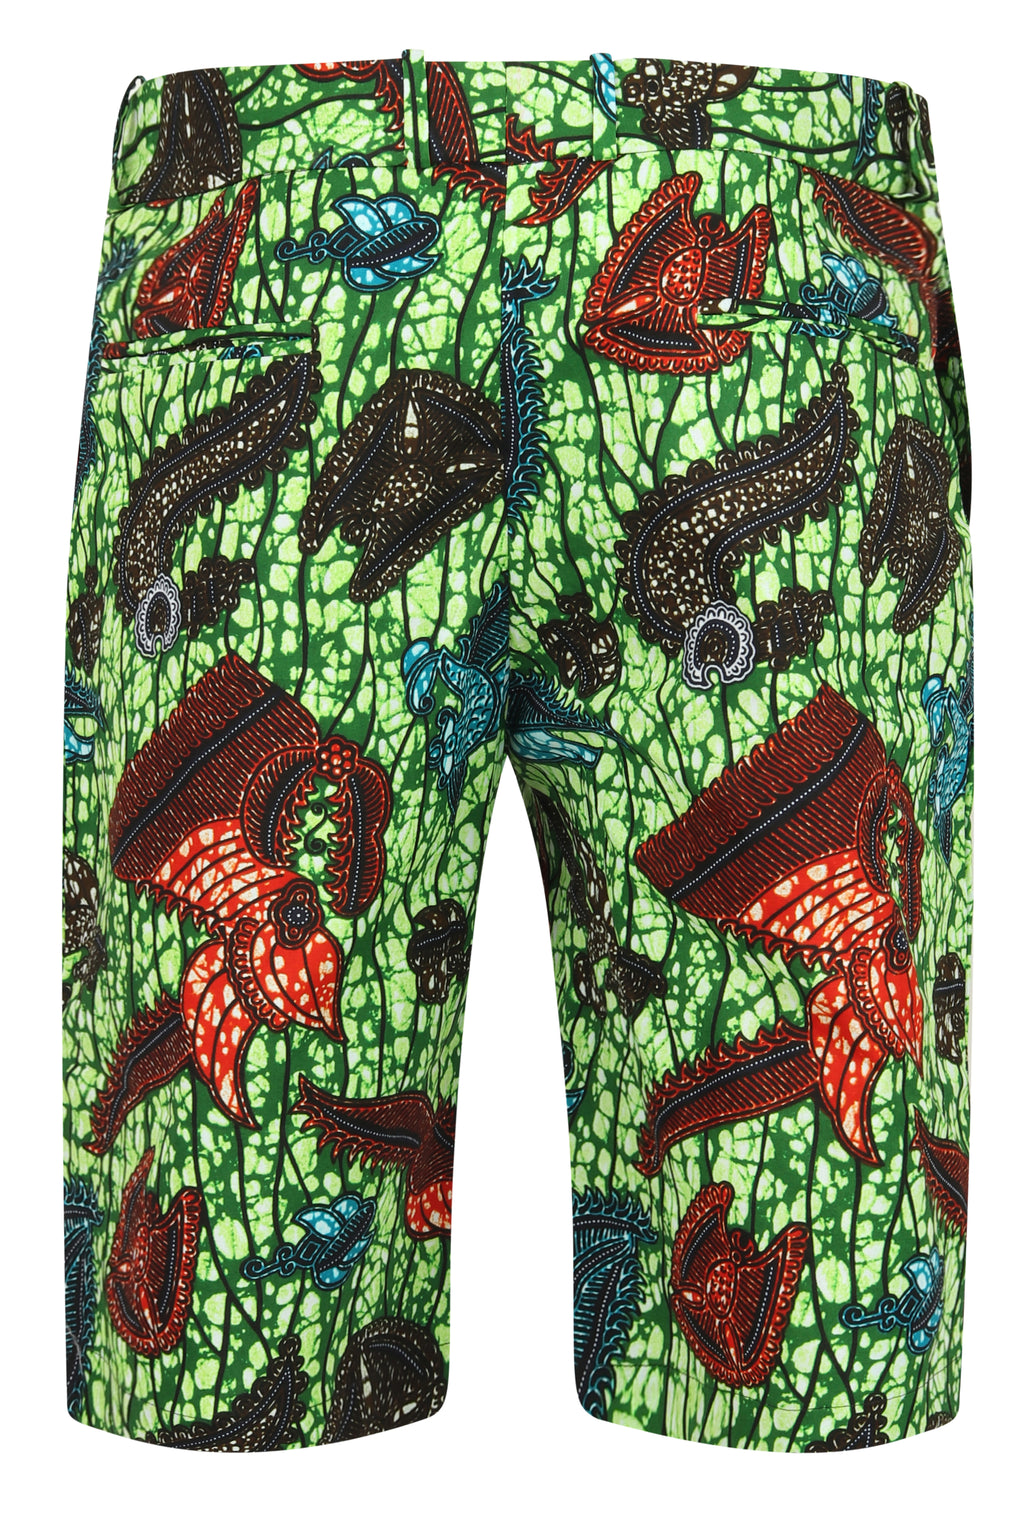 Jamie Men's African Print Fitted Shorts-Sea King